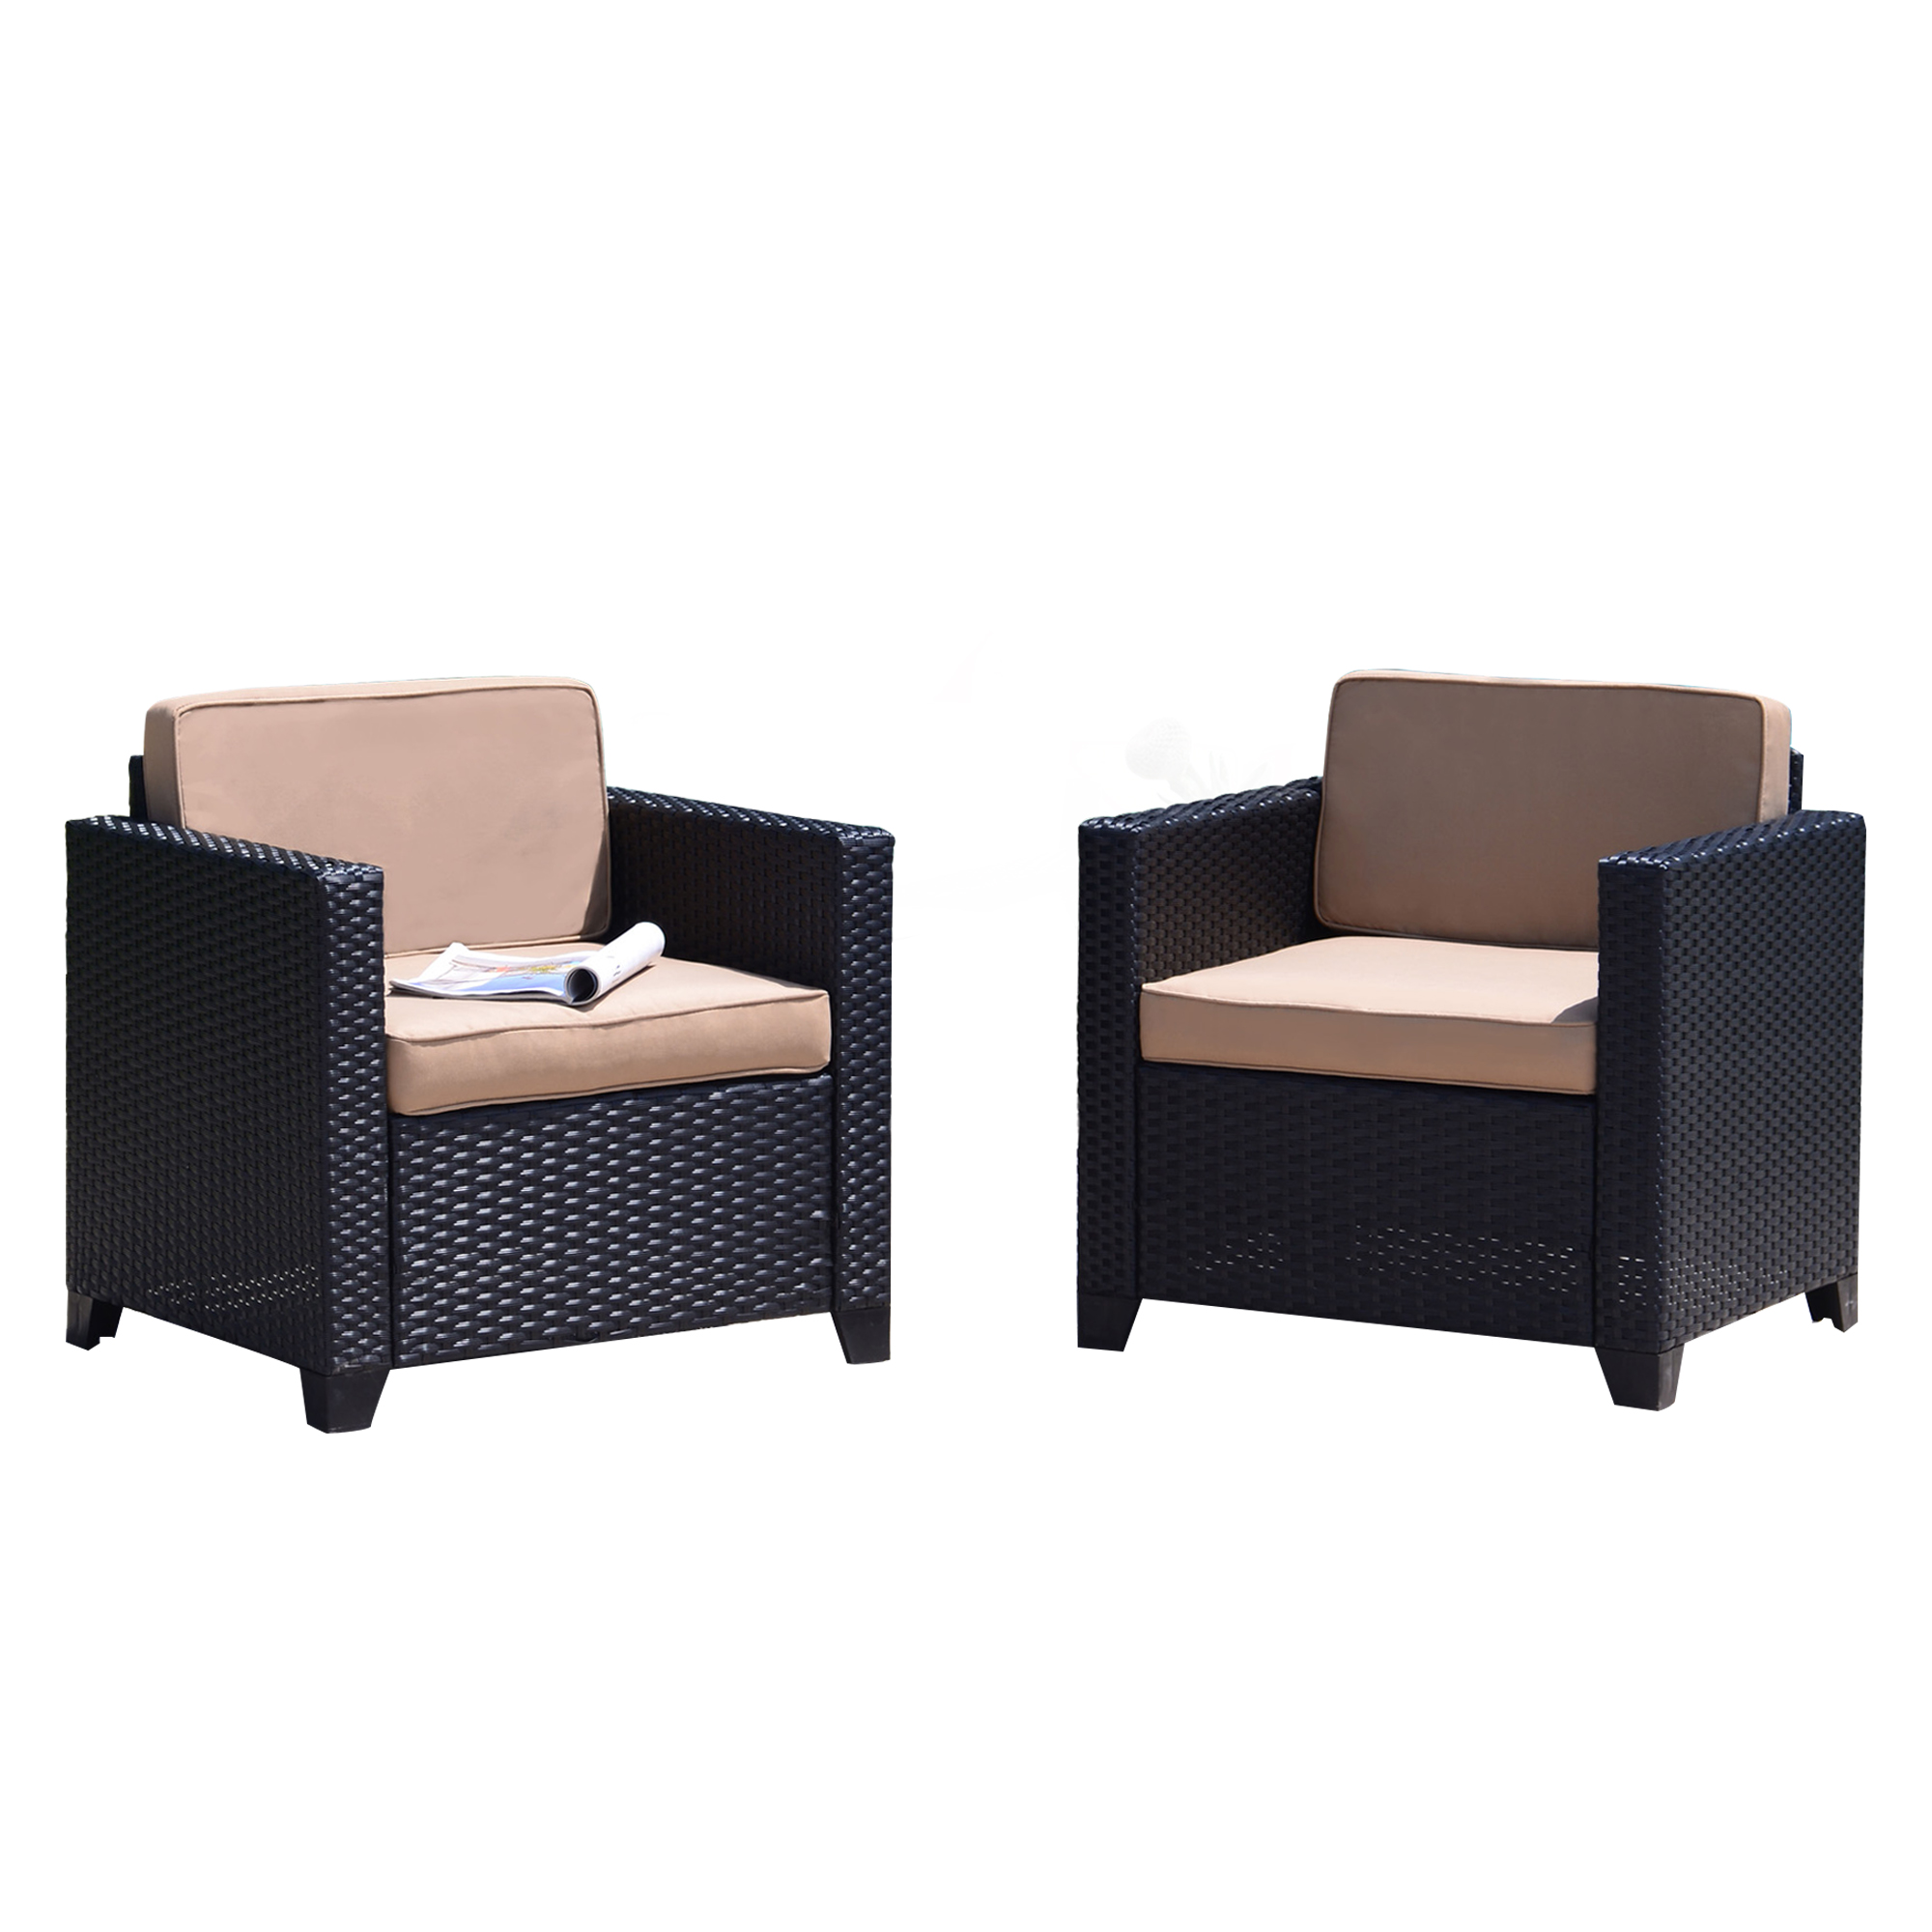 Finefind Set Of 2 Patio Wicker Club Chairs Set Outdoor Patio Dining Sofa Chairs Garden Lounge Seating Chairs Black Rattan With Khaki Cushions Walmart Com Walmart Com